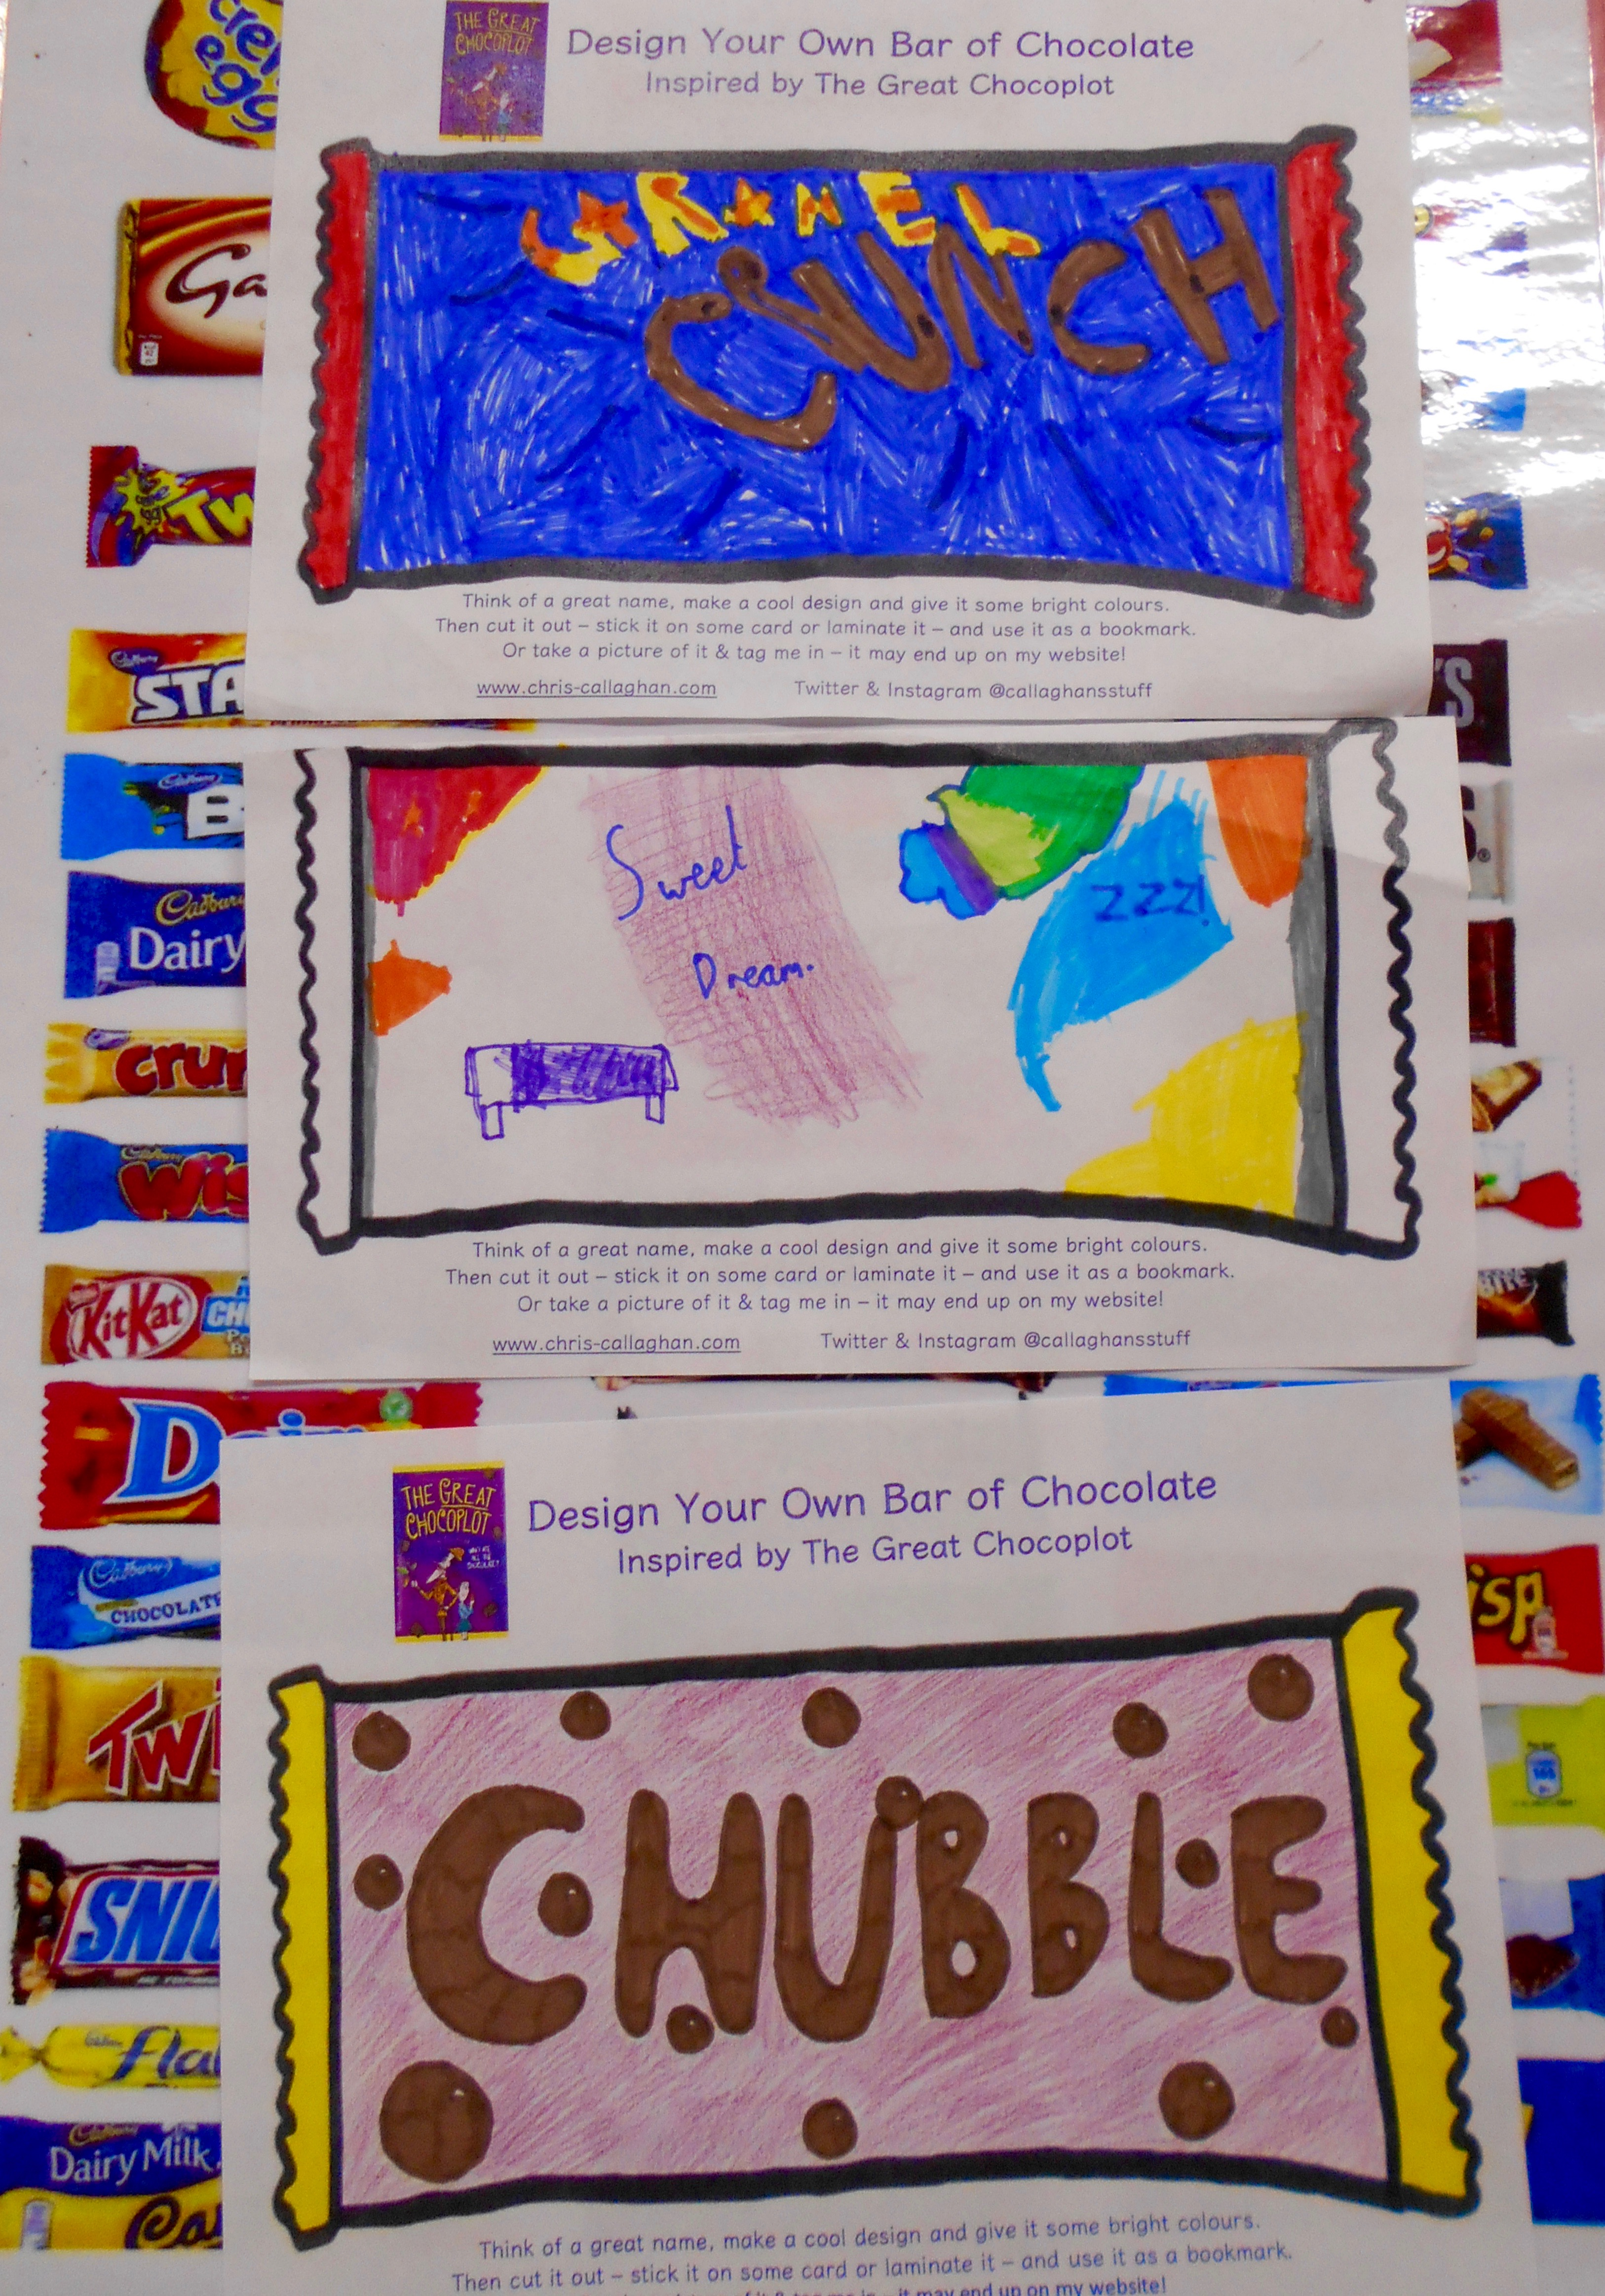 Beth, Amelia and Jennifer at Norton Library designed some brilliant bars of chocolate. I'd definitely buy them!!